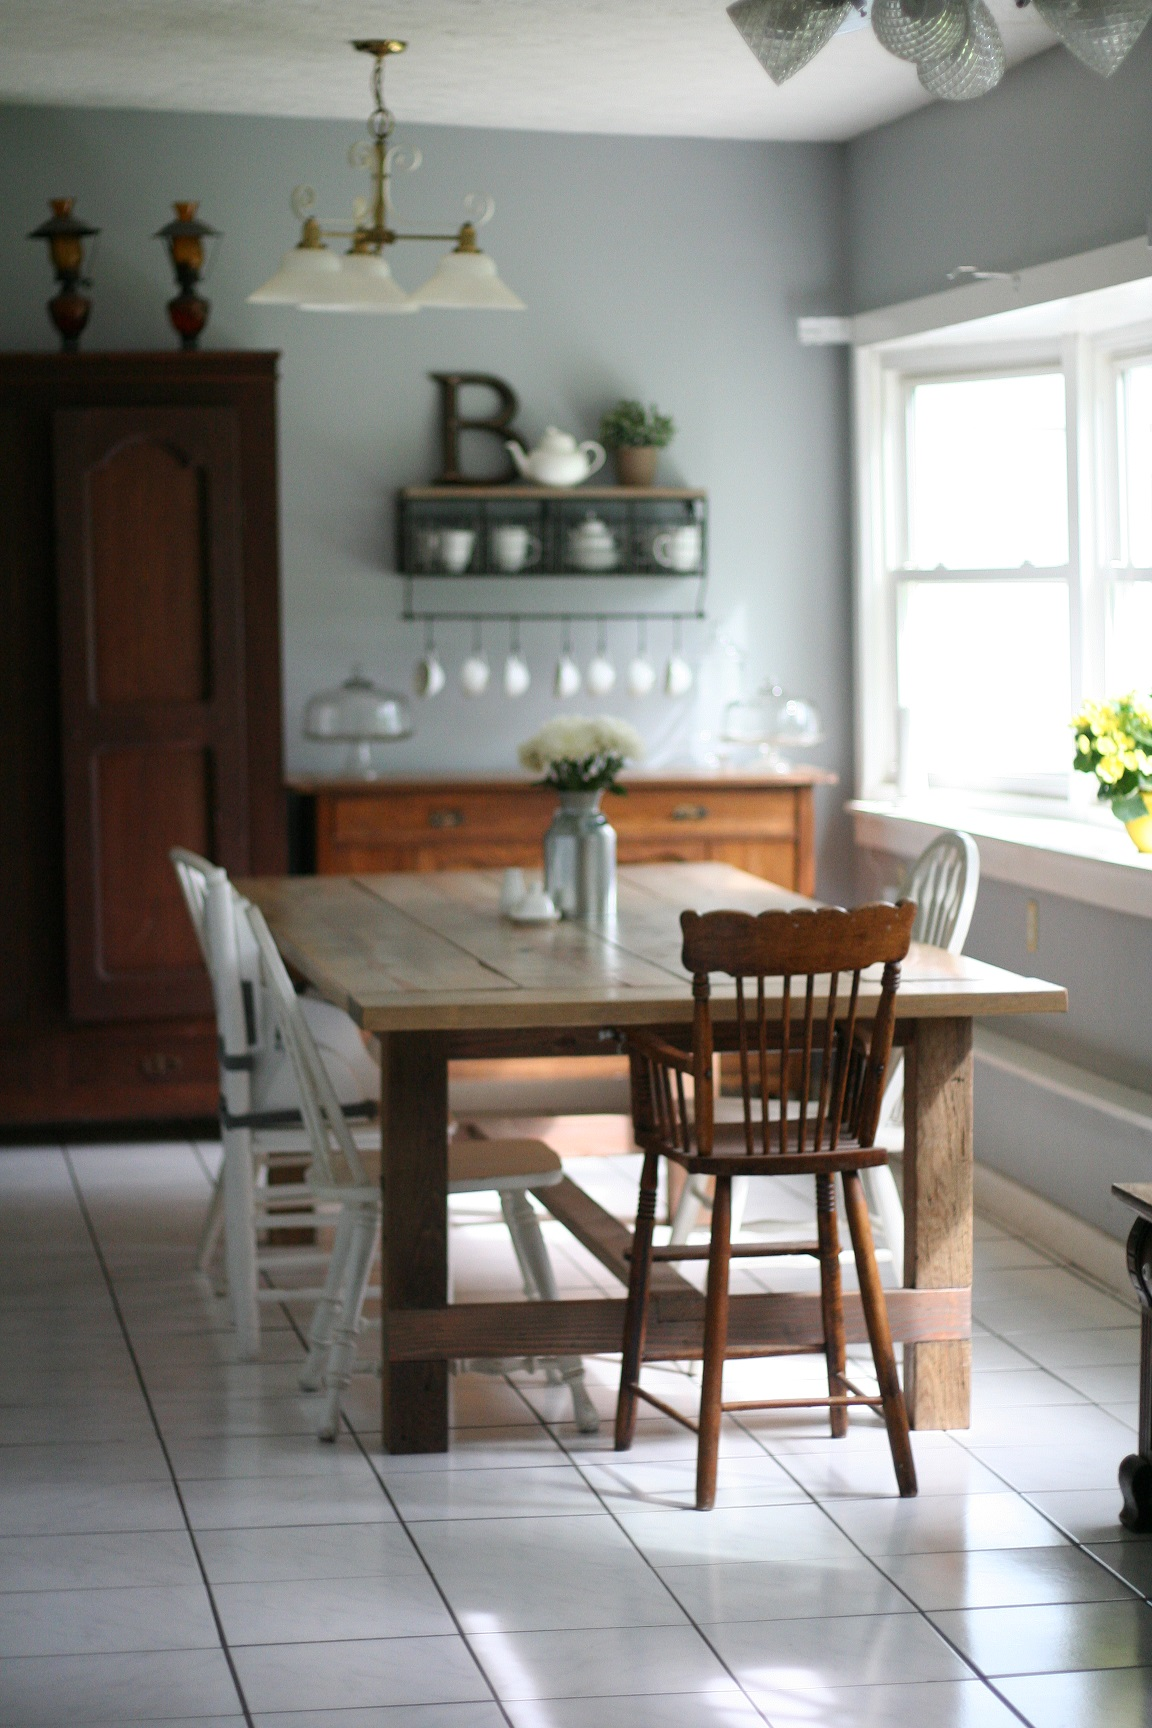 operation blanton farm, kitchen progress via thelovelylauralife.com (2)